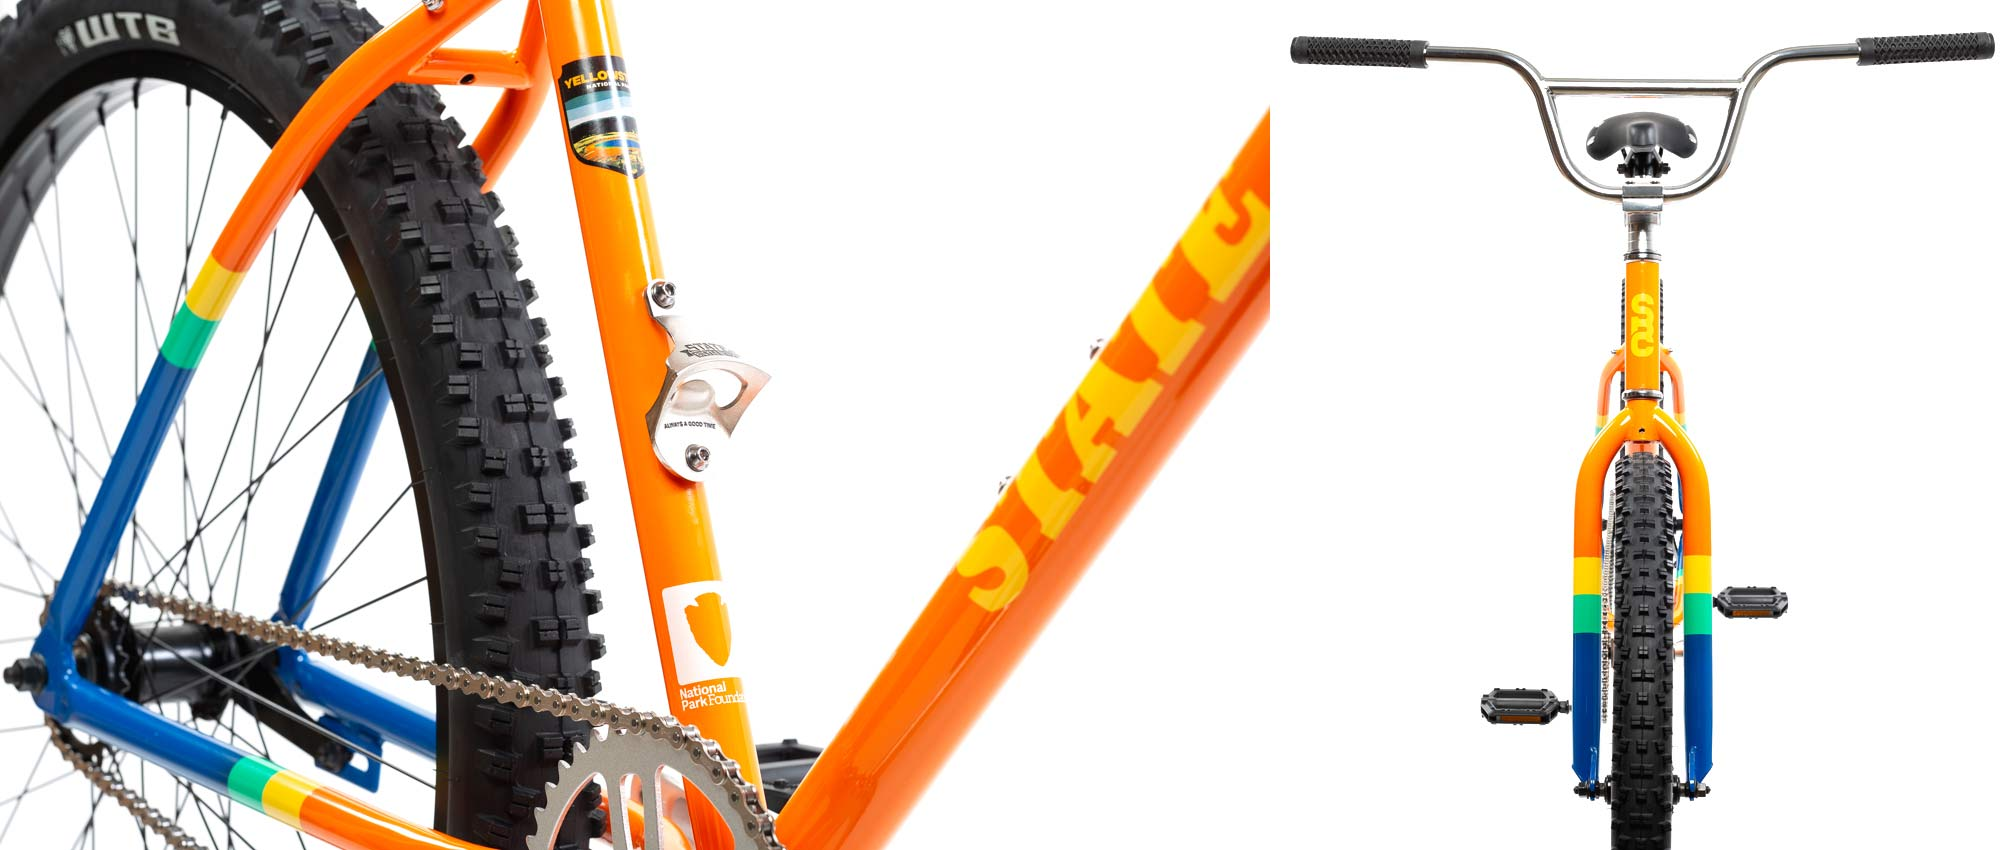 State X NPF collection, State Bicycle x National Park Foundation limited-edition bikes & gear,Klunker details